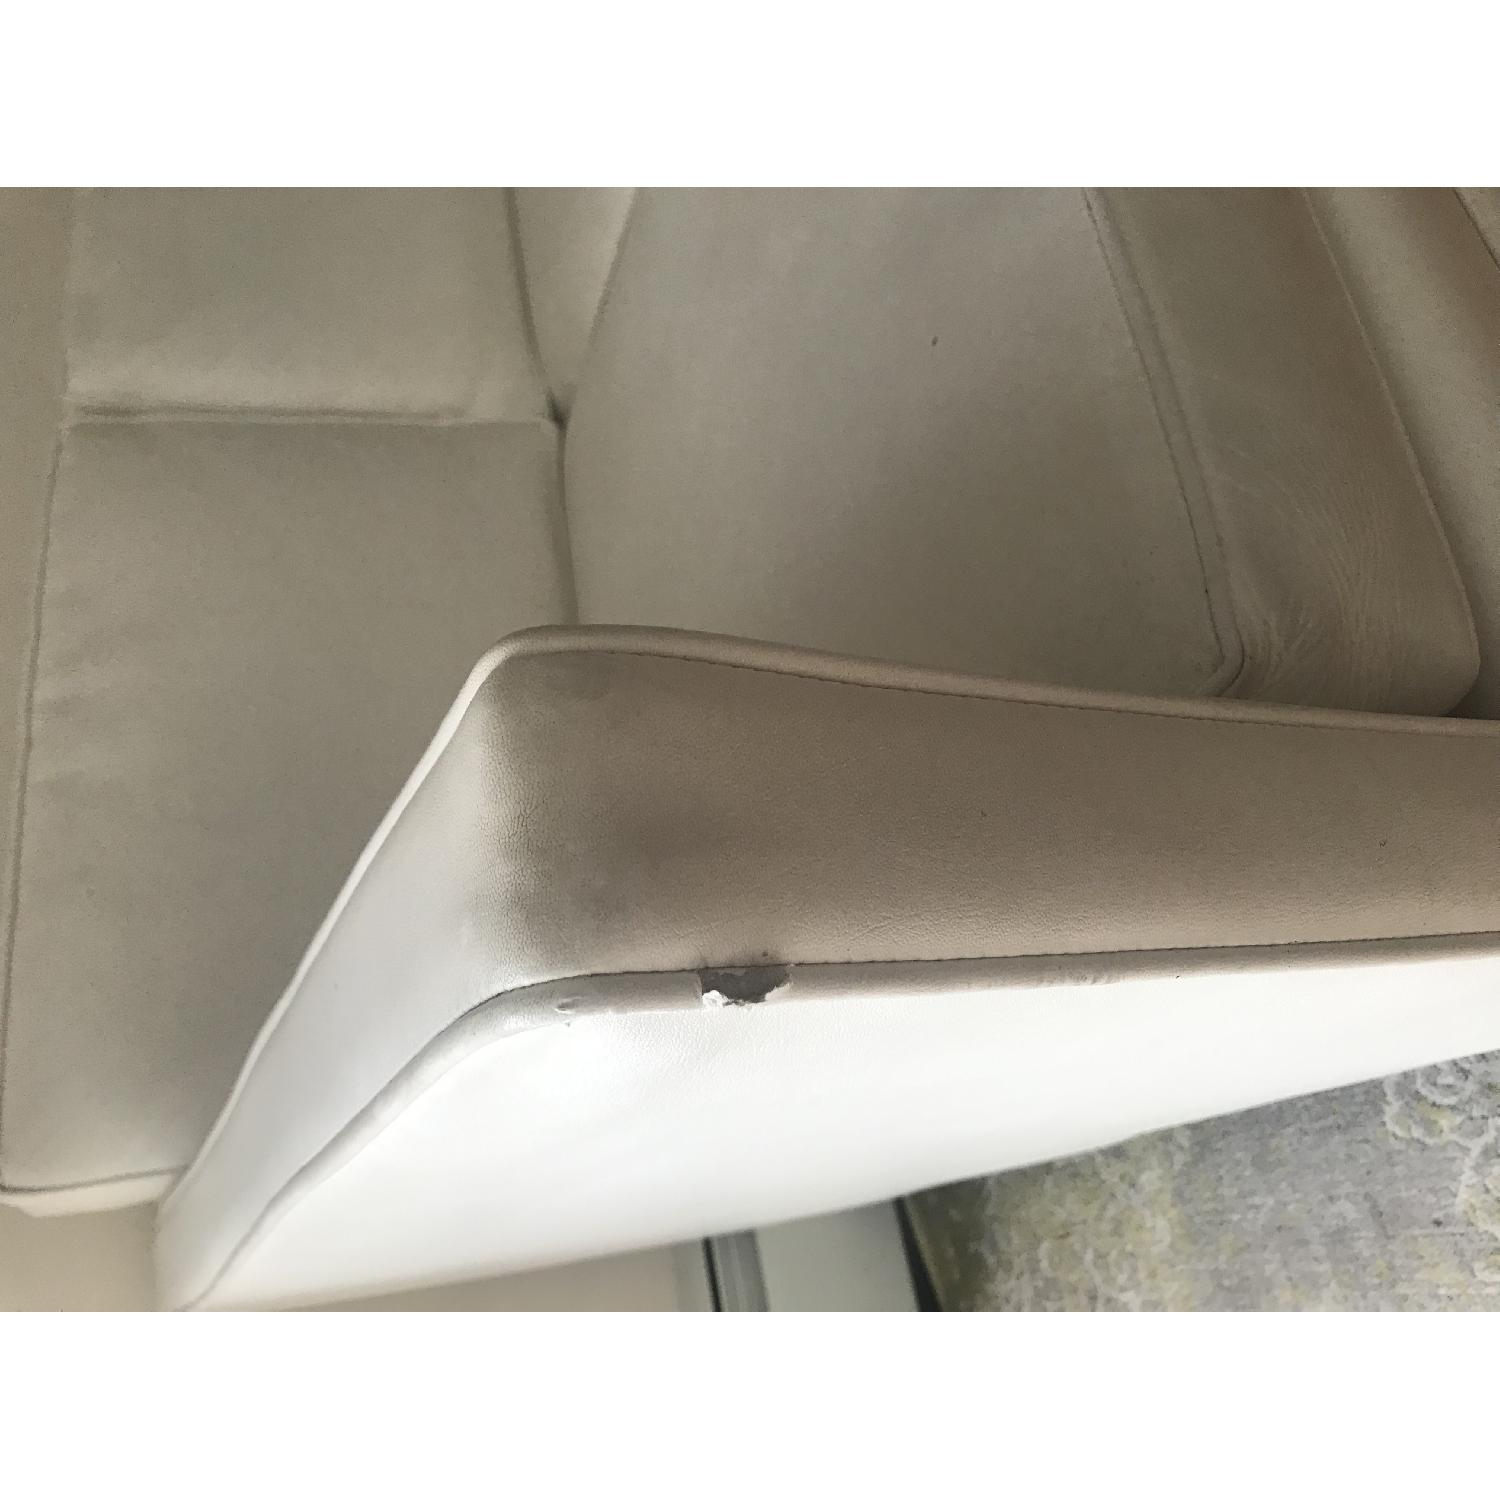 Drexel 1960s White Leather Modern Sofa - image-4